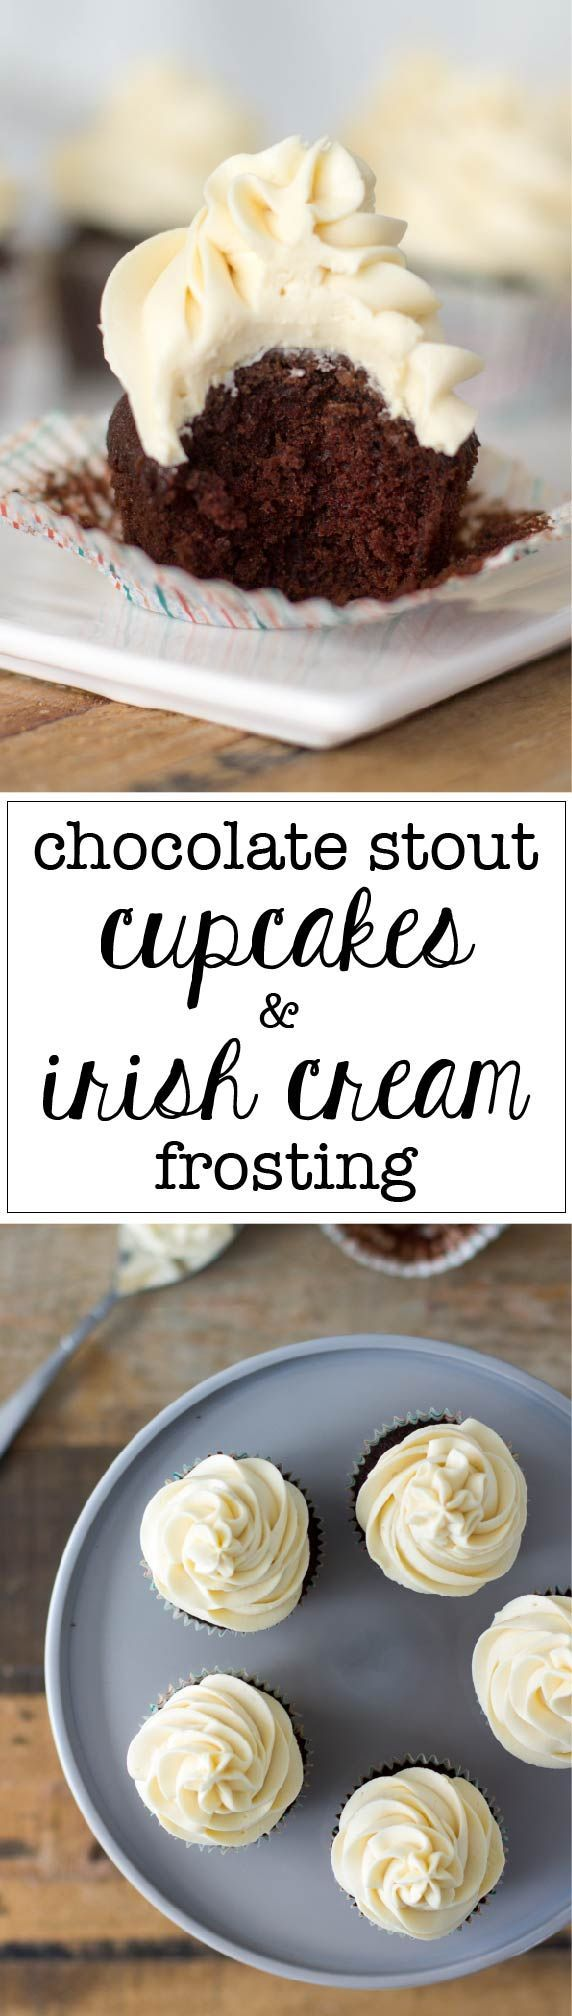 Moist, delicious chocolate stout cupcakes with the perfect Irish cream frosting. via @nourishandfete